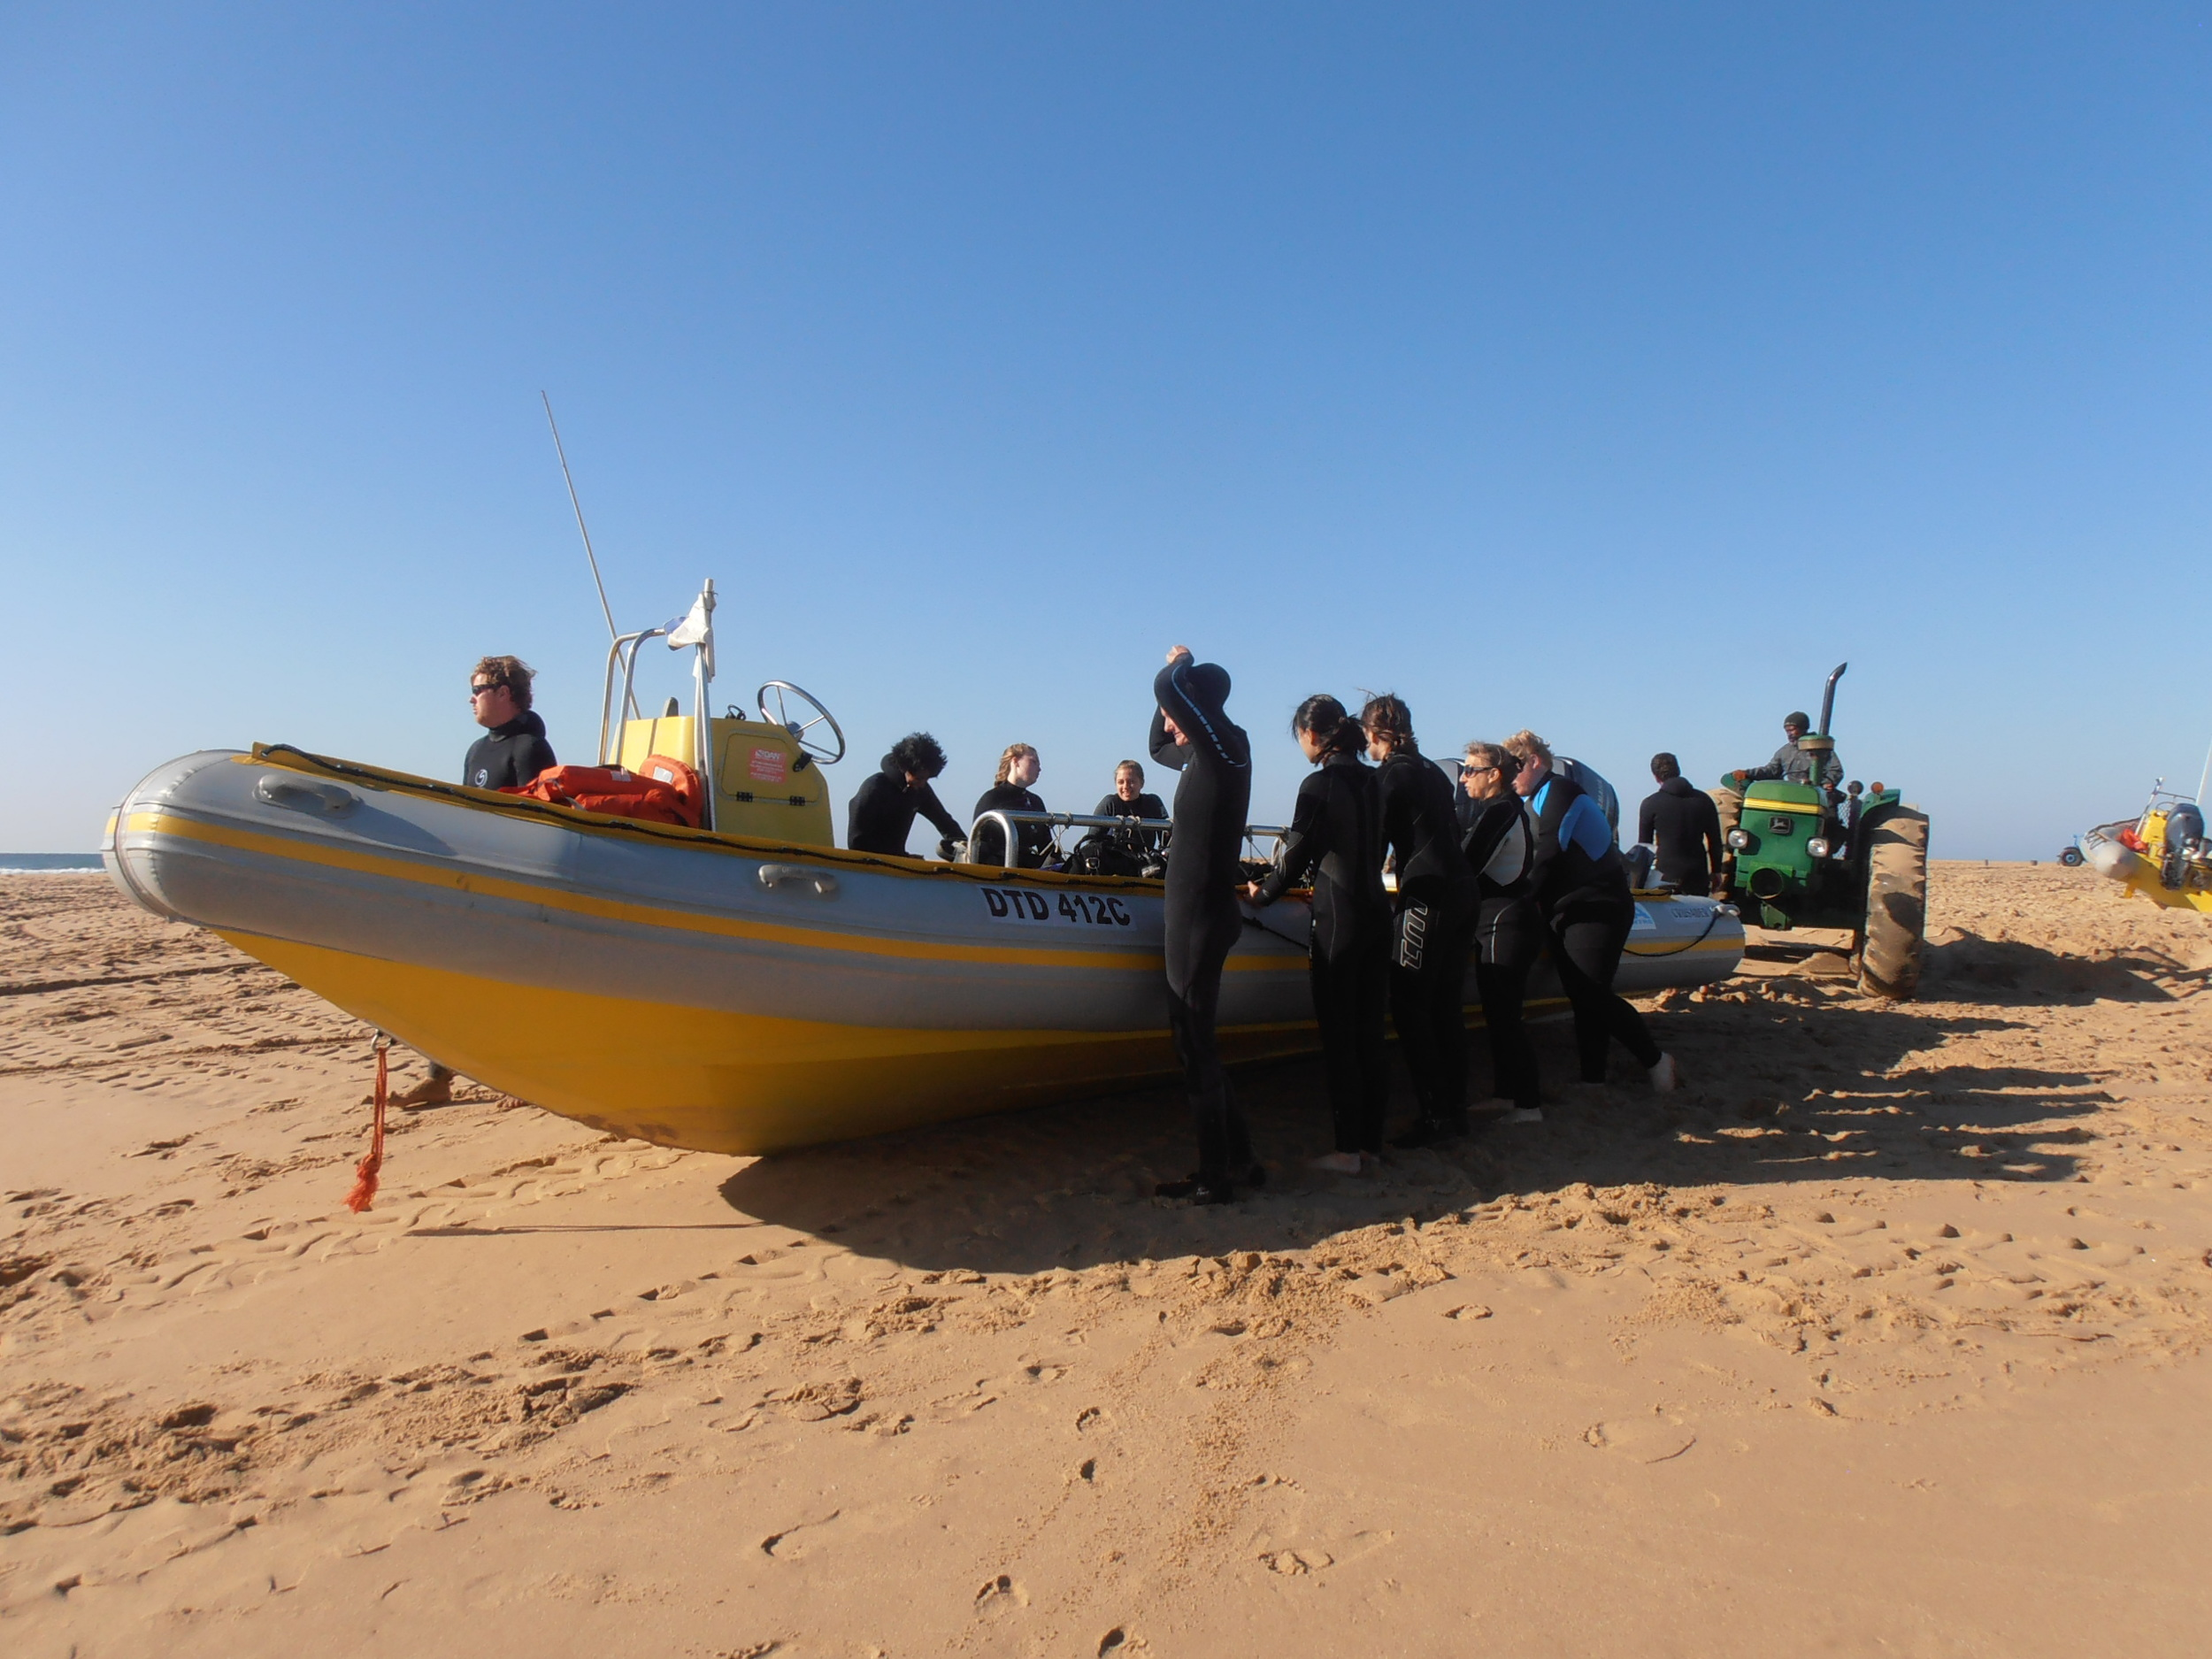 Preparing to launch our boat.  We walk beside it until it is afloat and then scramble into the boat for take-off.